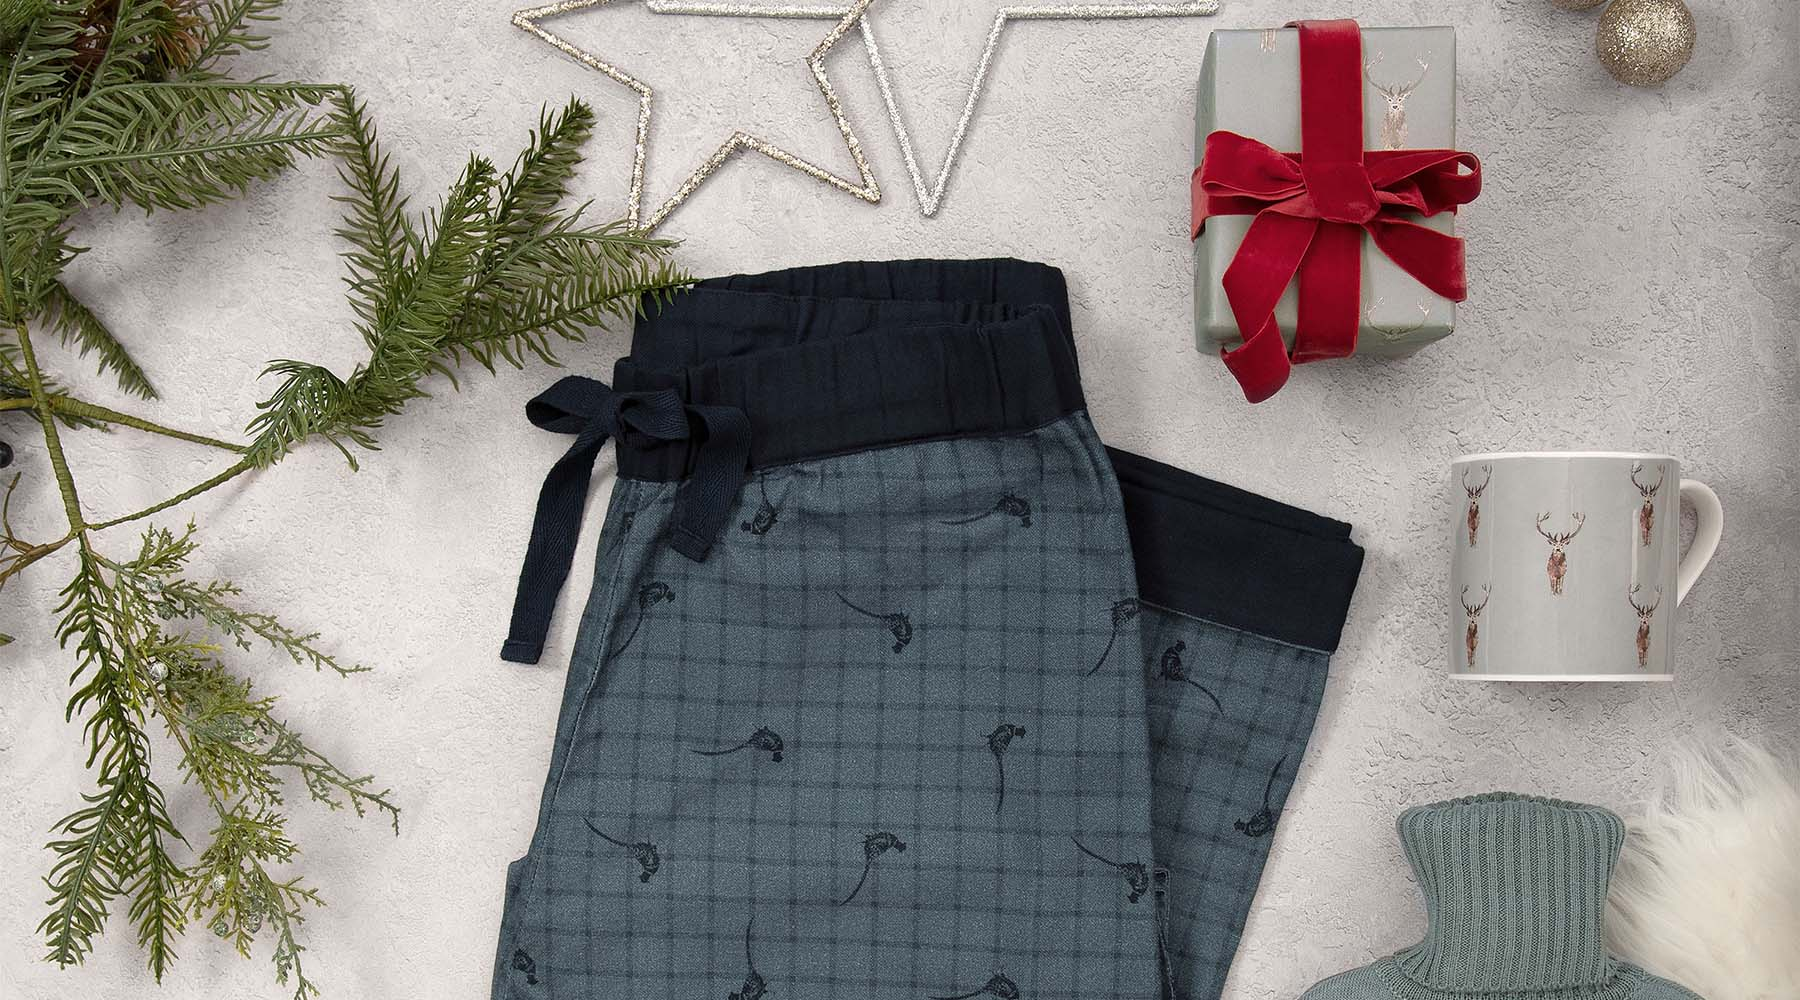 Gifts for him. Men's gifts from Sophie Allport.